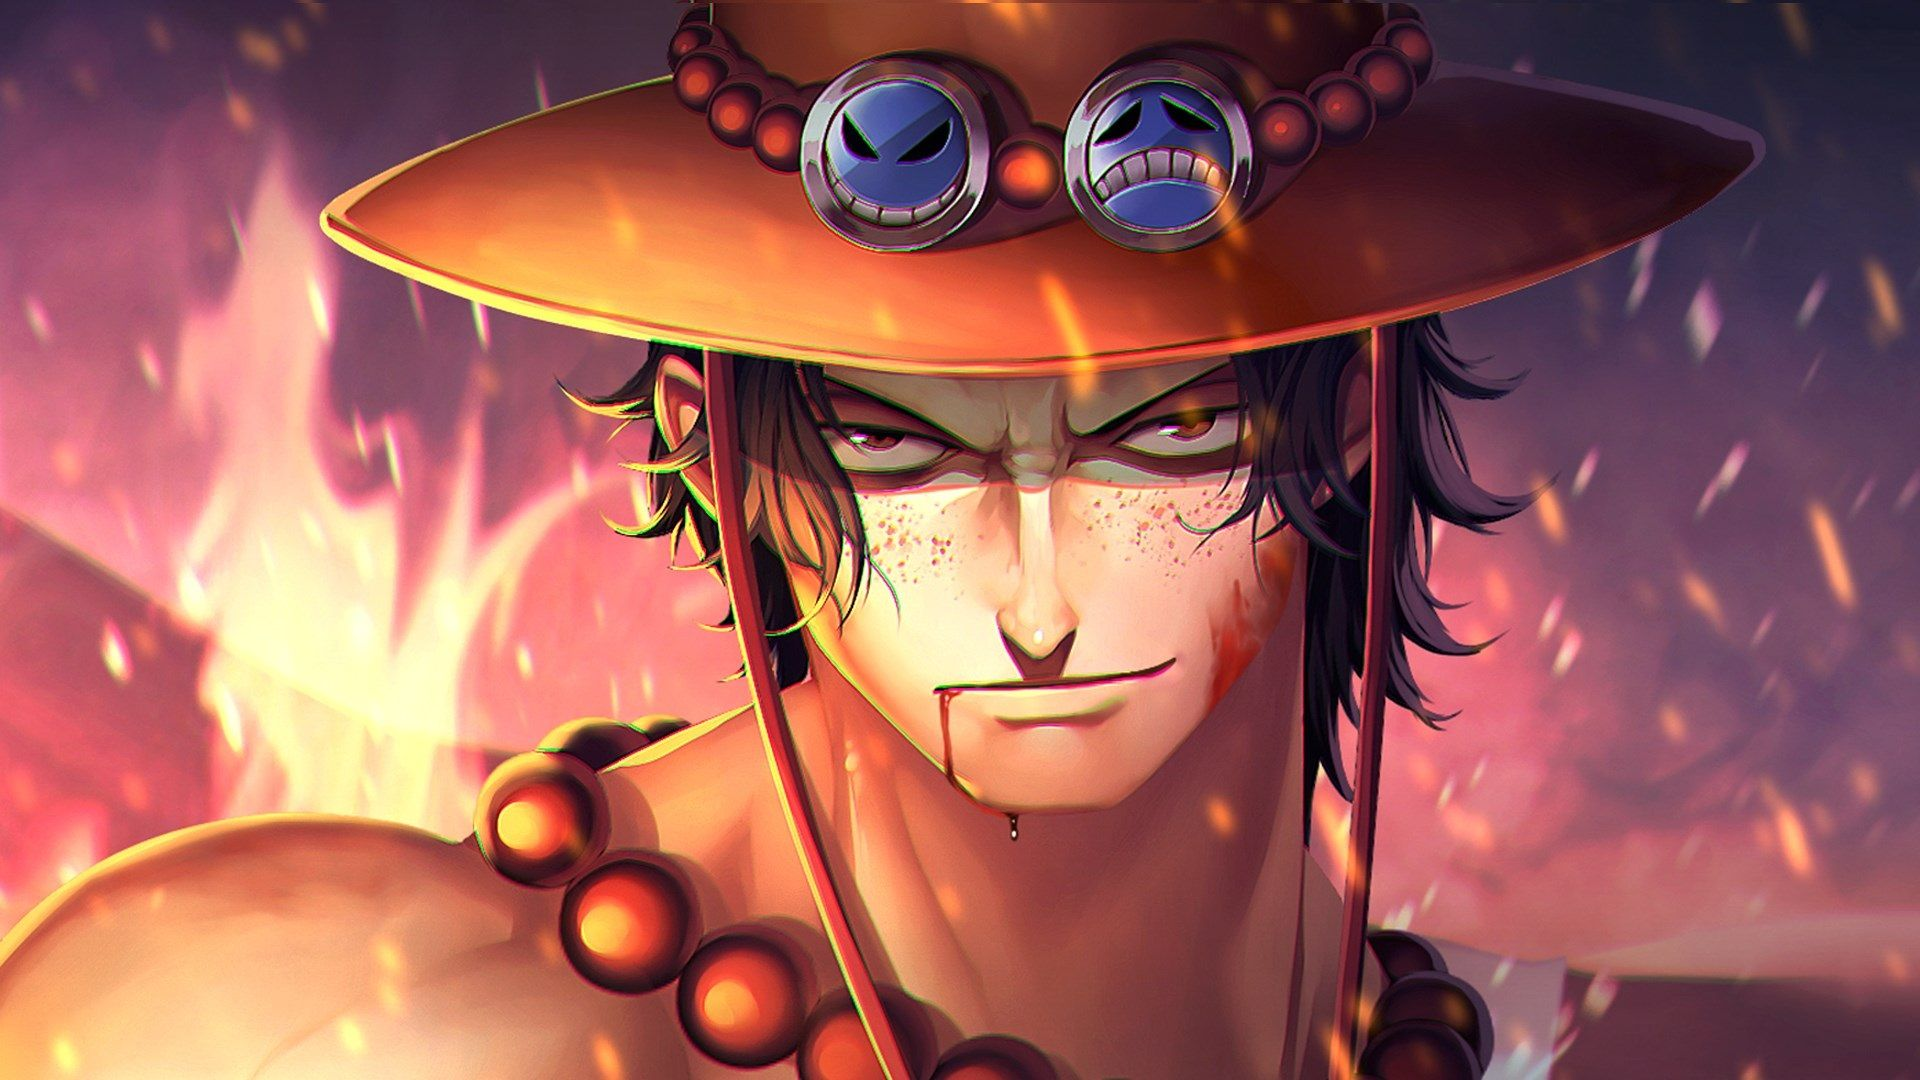 1920x1080 Anime Wallpaper Pc Full Hd Ace One Piece One Piece Anime Portgas D Ace